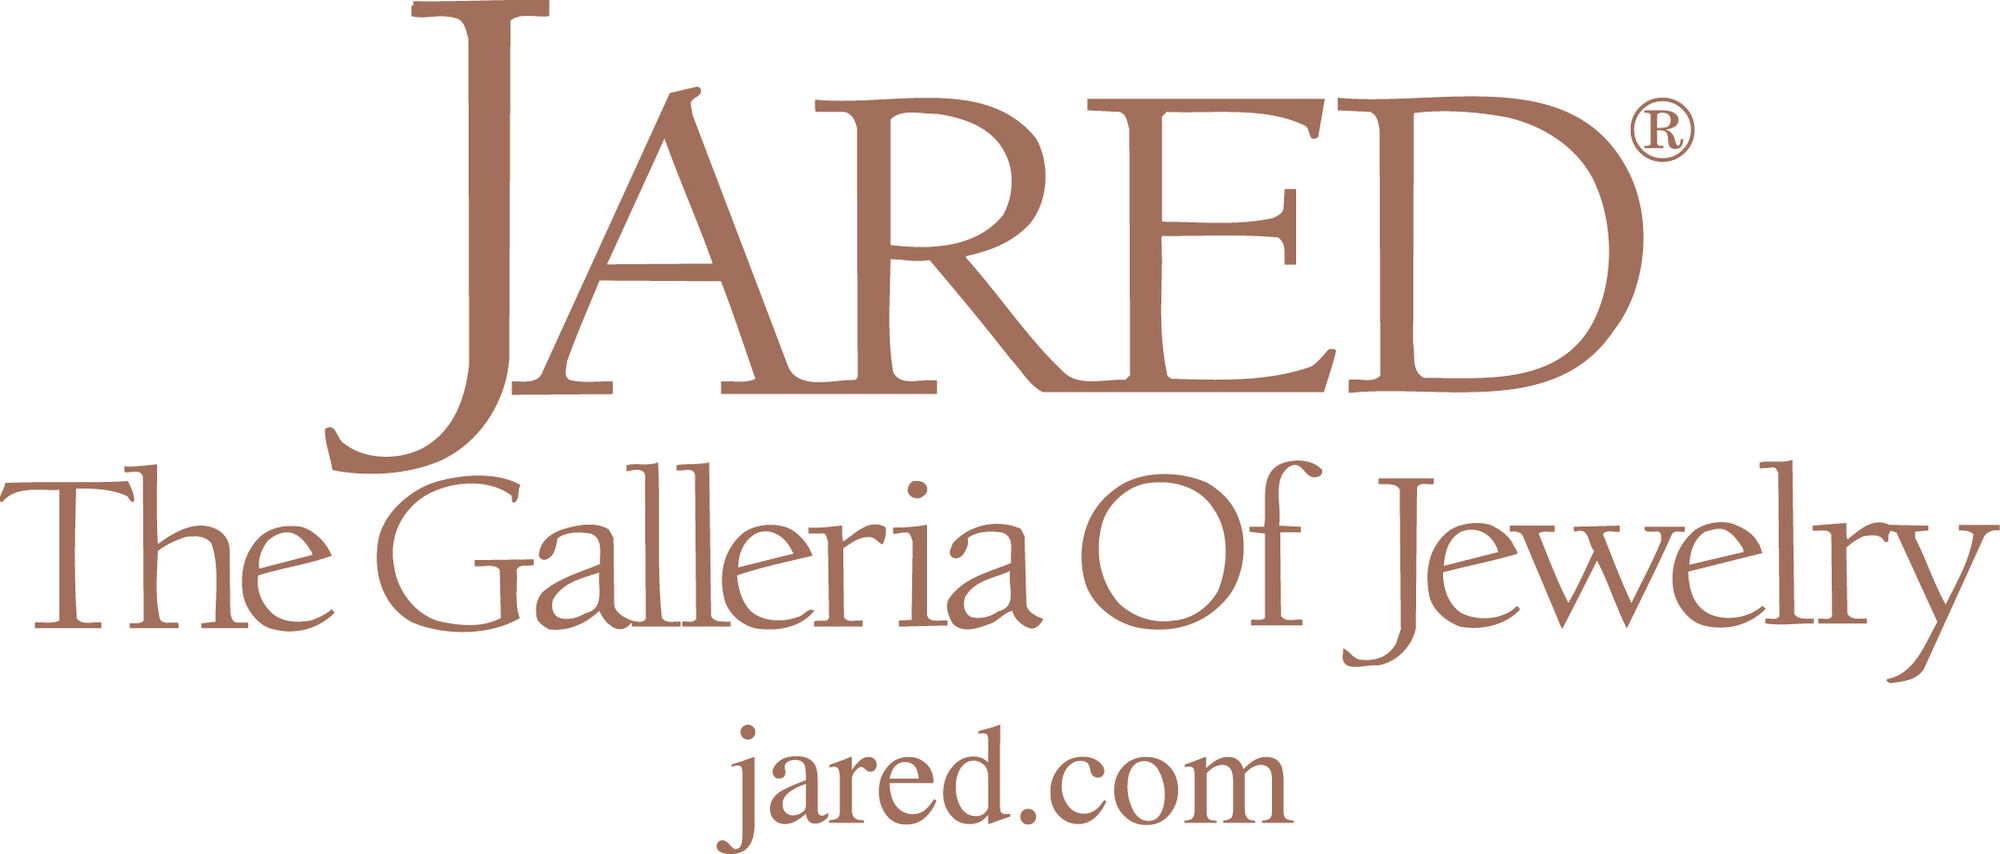 Jared the Galleria of Jewelry EX515 Wiki FANDOM powered by Wikia